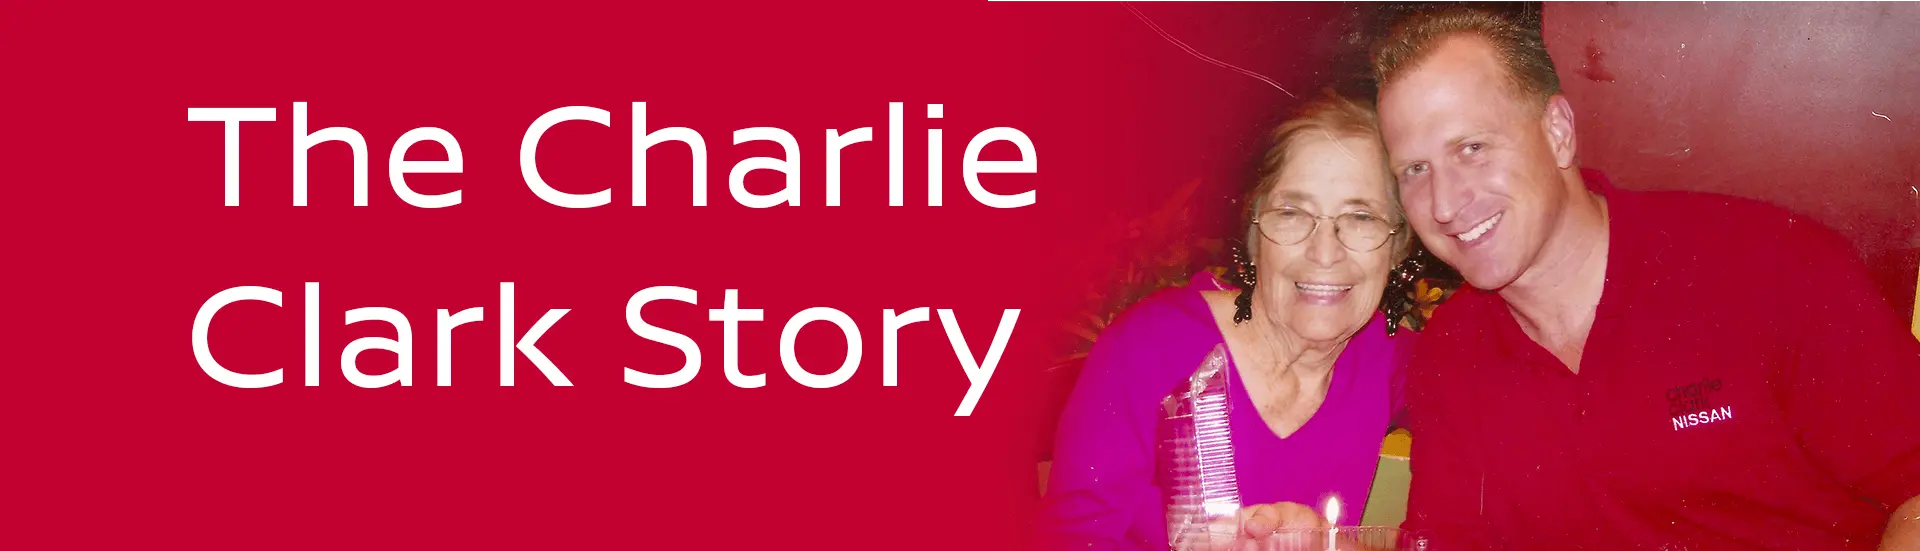 The Charlie Clark Story